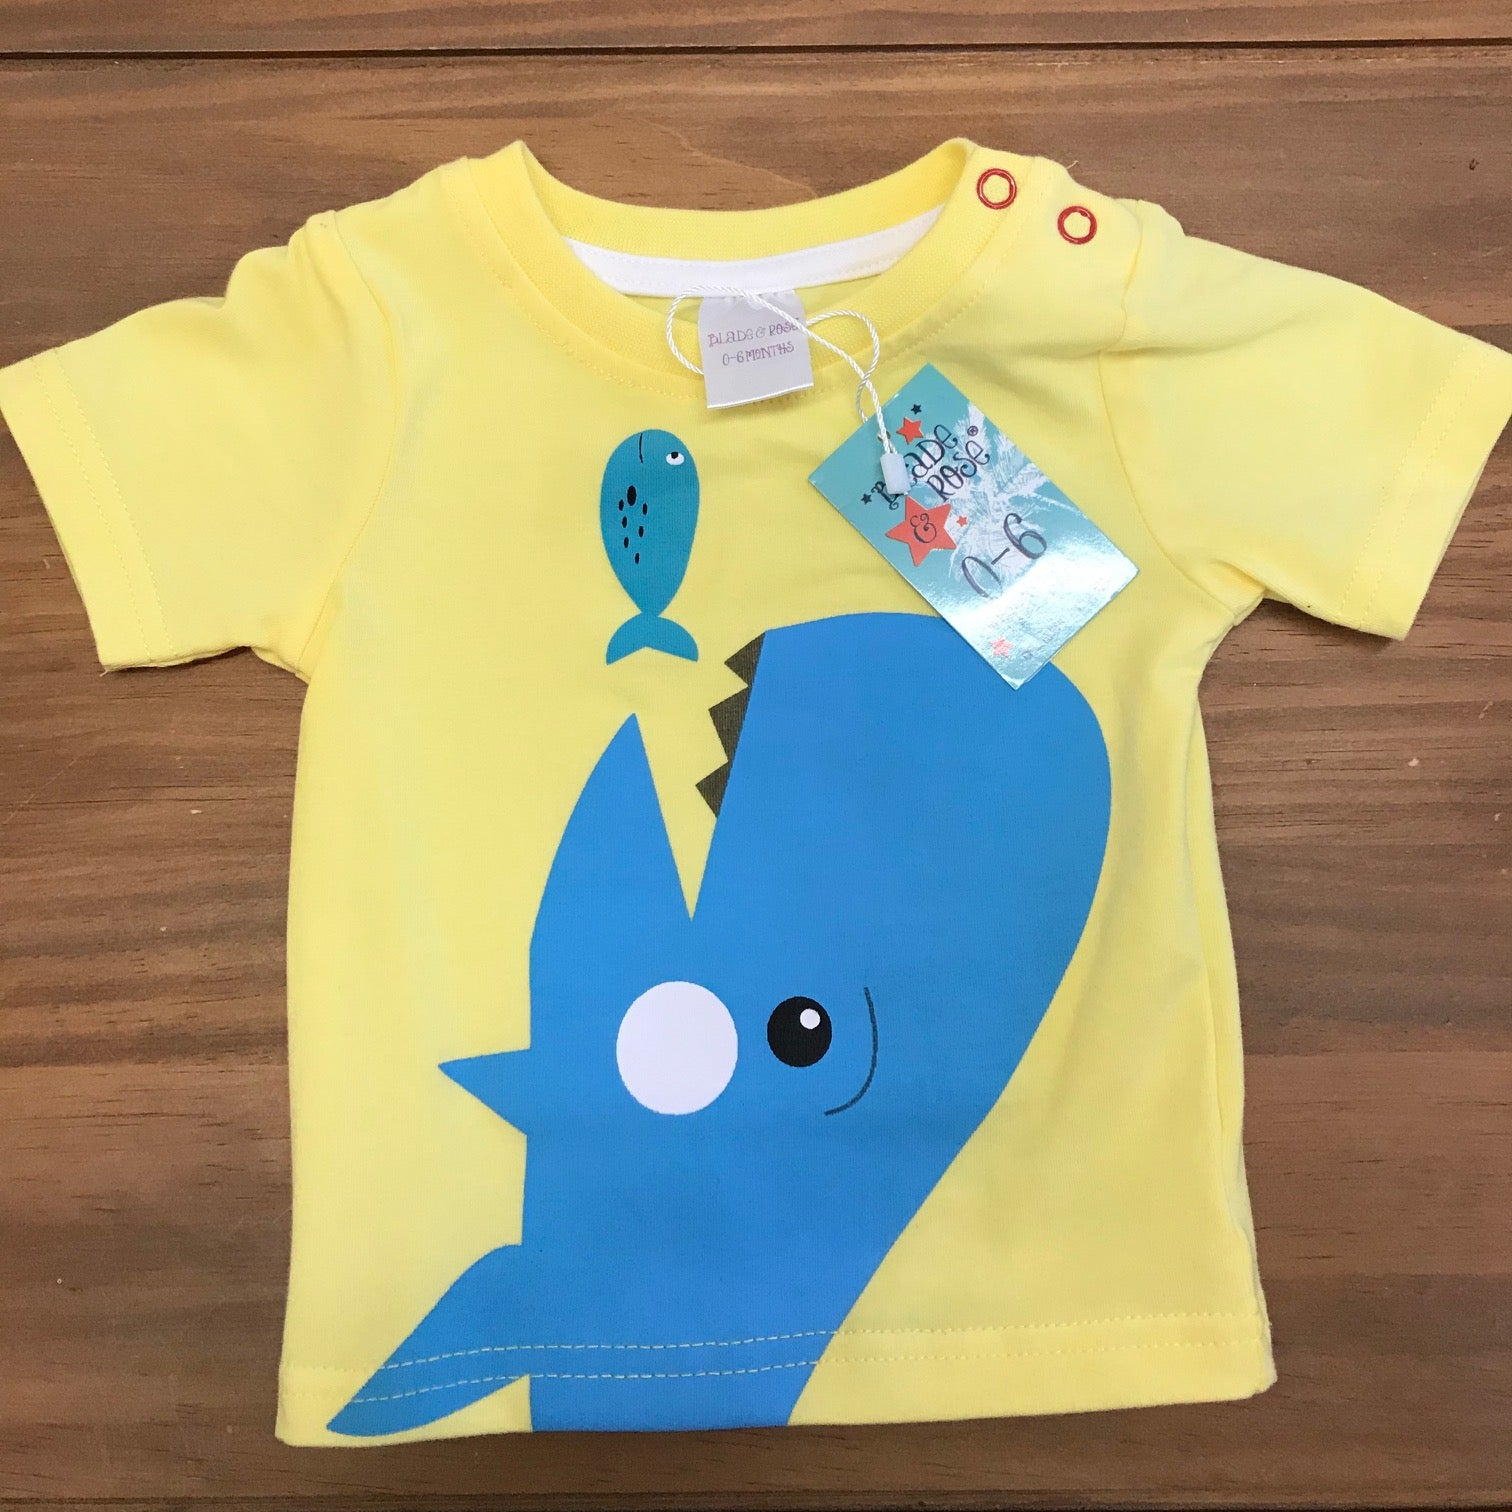 Blade & Rose Sea-life T-shirt 0-6mths